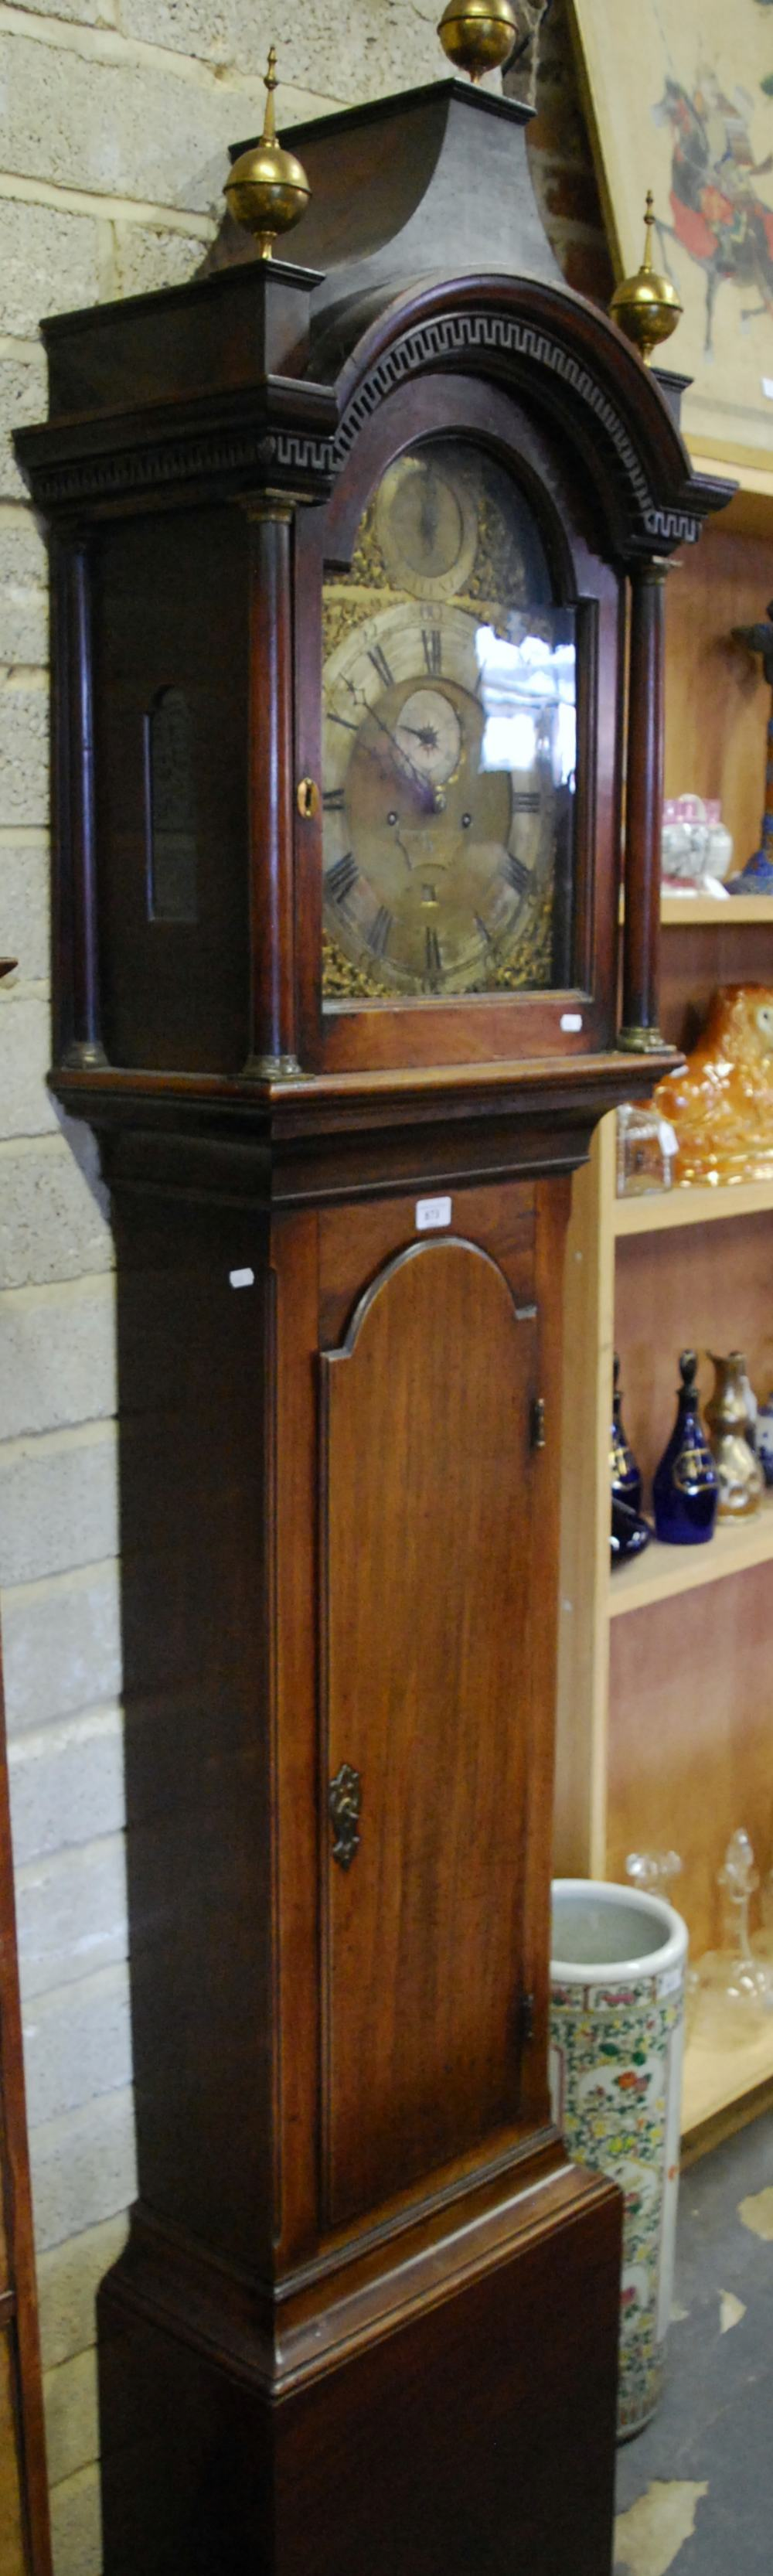 Lot 873 - Joshua Frattle, Portsmouth, an 18th century 8-day mahogany longcase clock, the brass and silvered